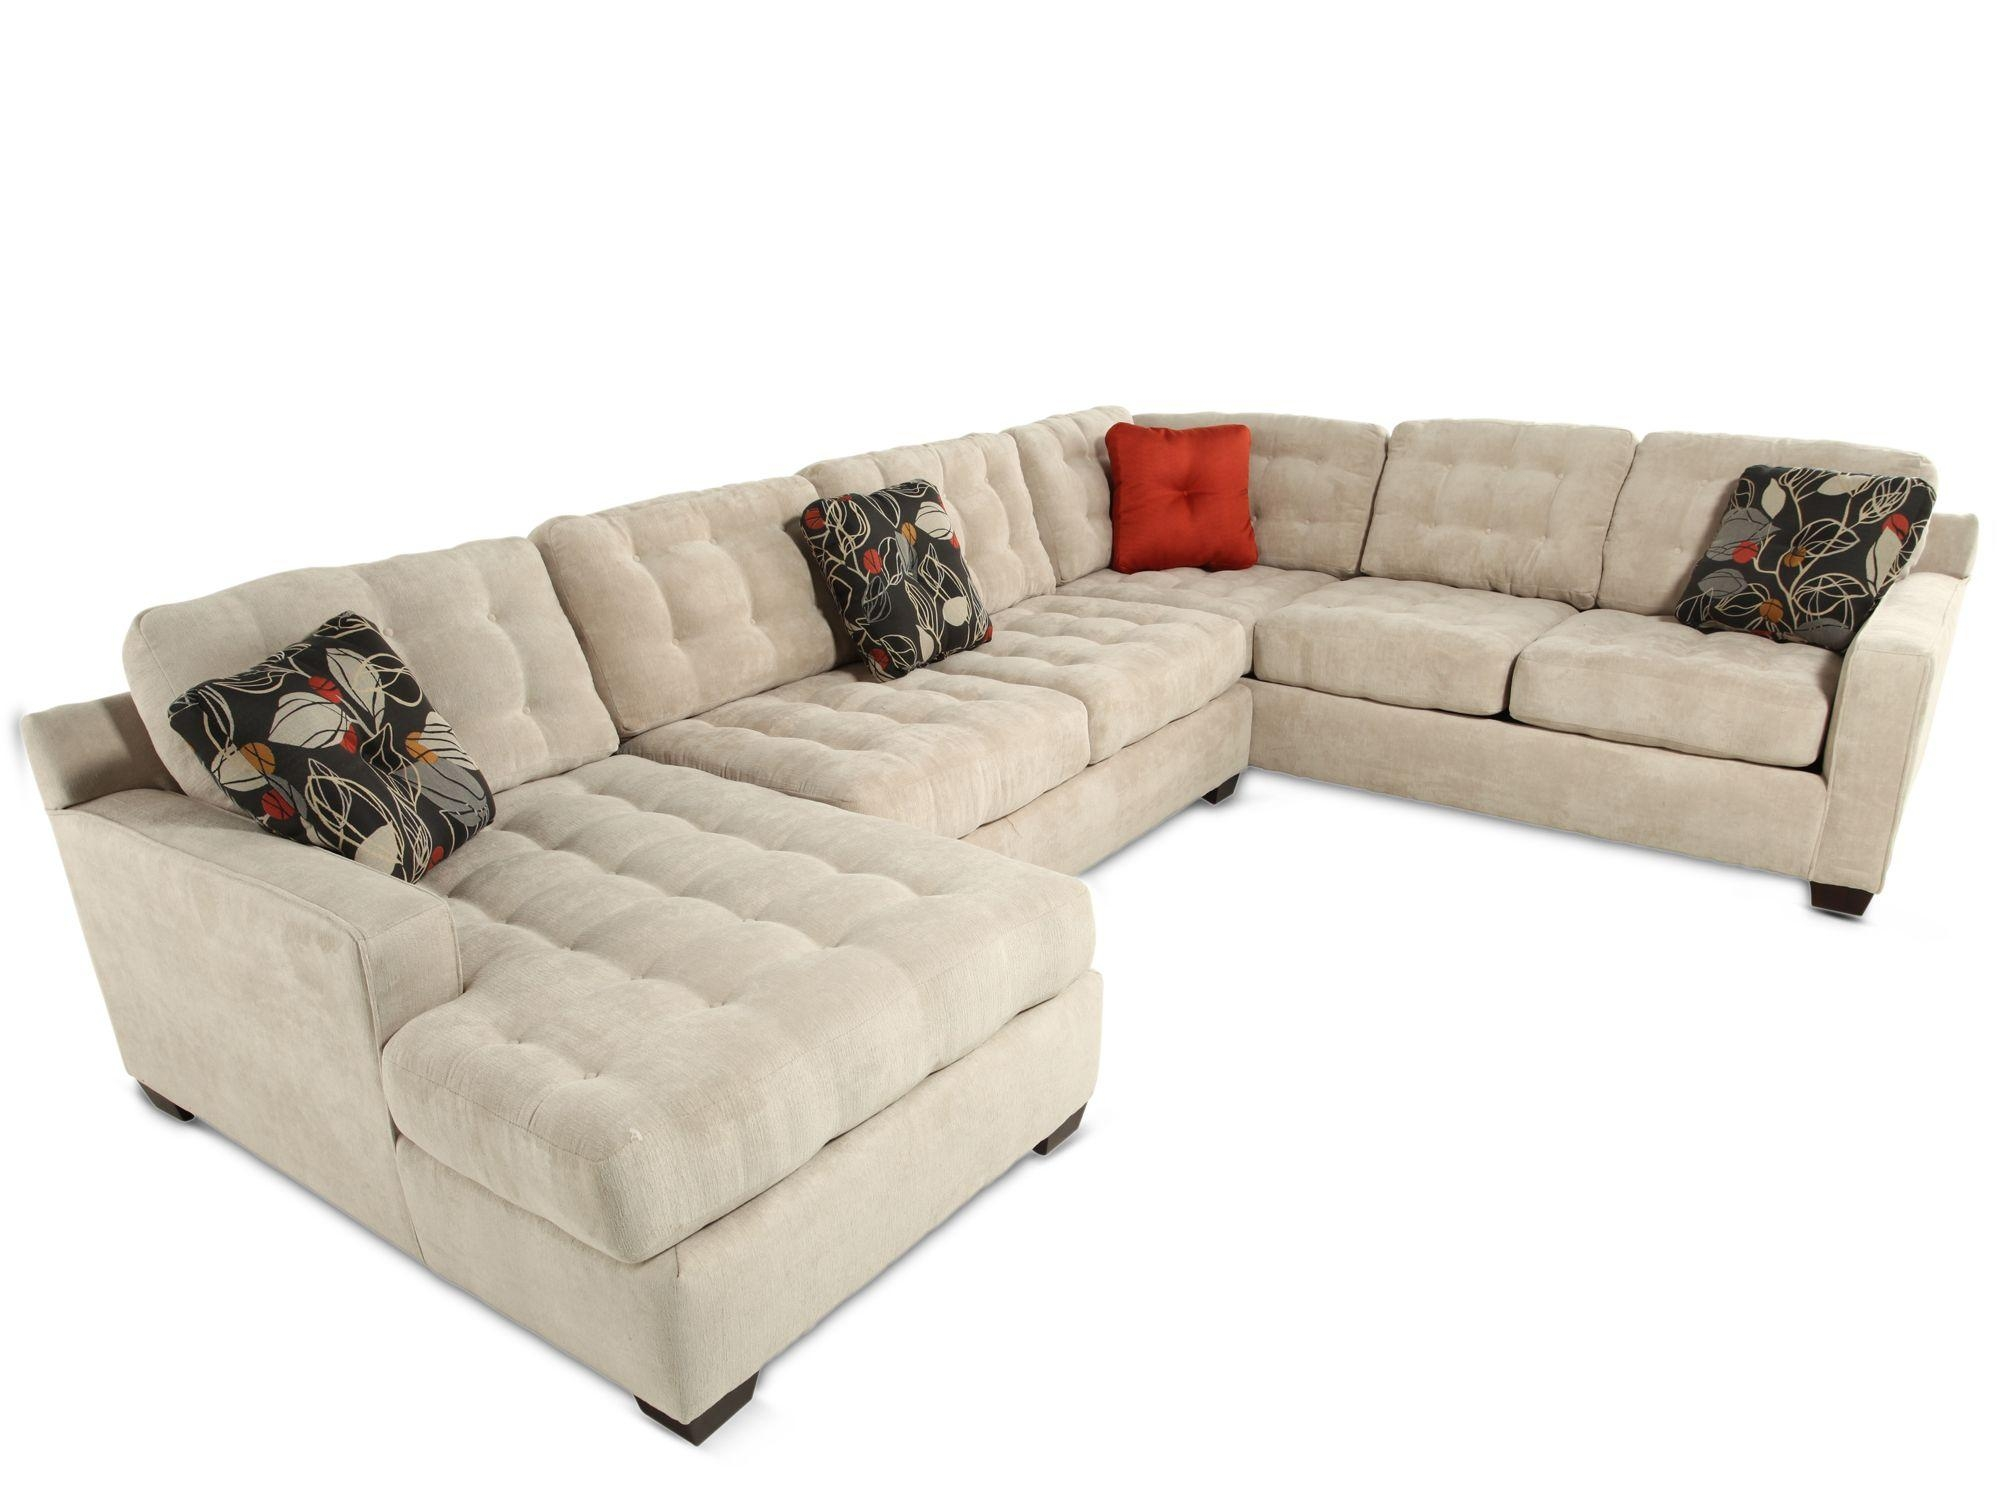 Sofas Center : Formal Living Room Sofa Design Broyhill Furniture With Broyhill Sectional Sofas (View 9 of 15)